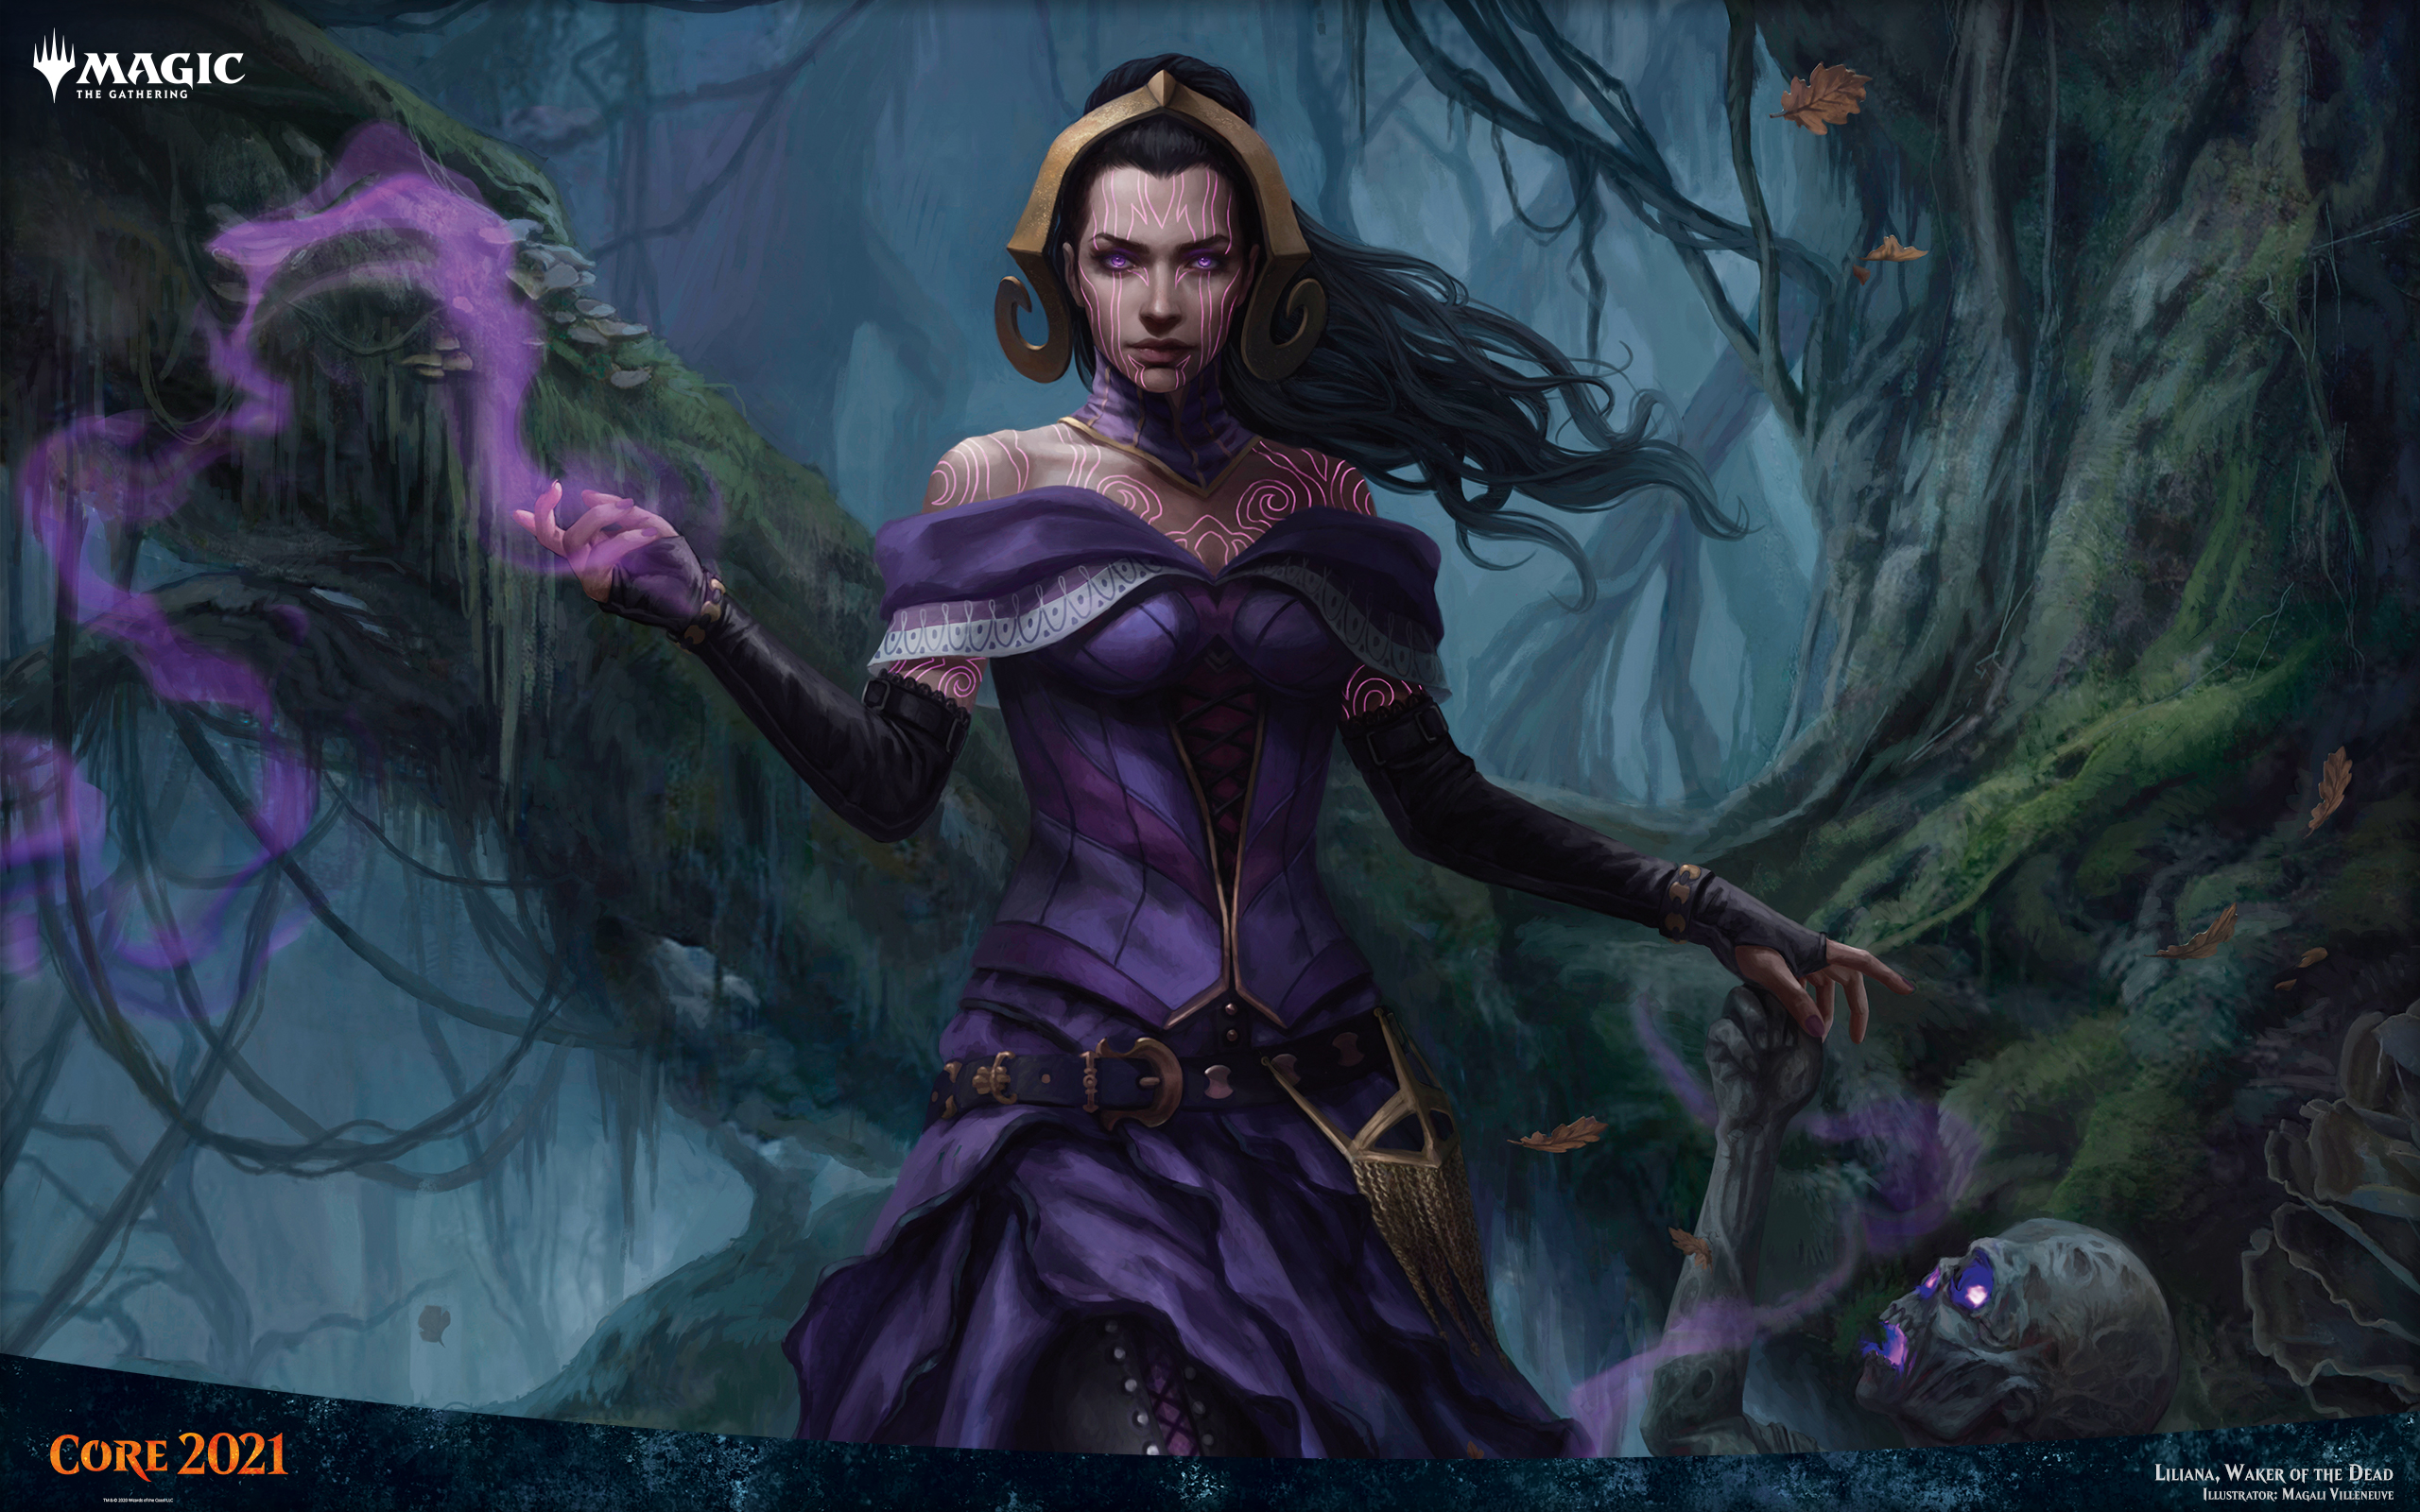 liliana waker of the